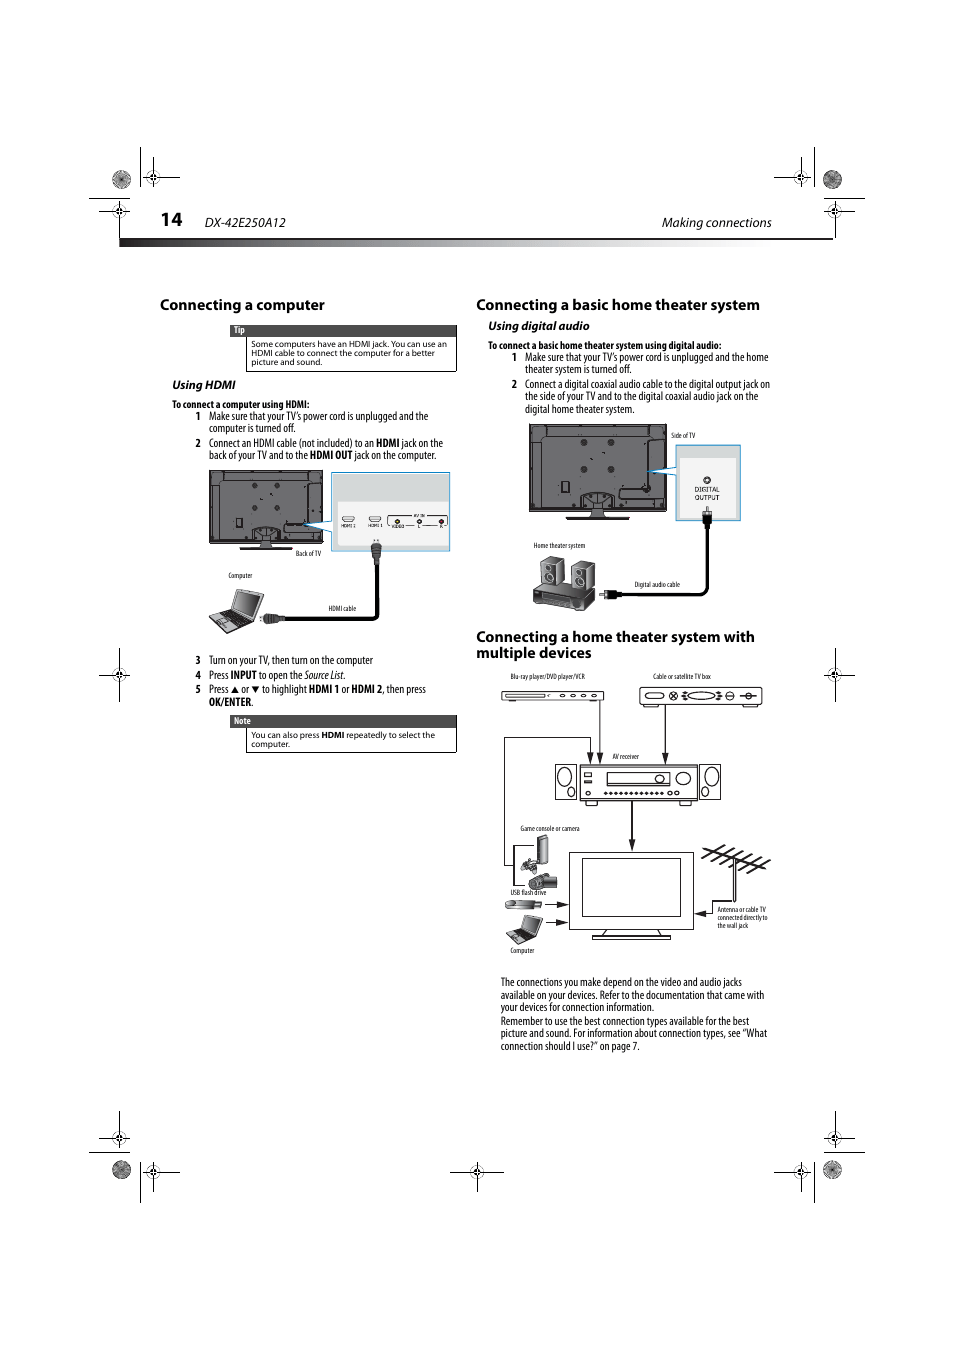 medium resolution of connecting a computer using hdmi connecting a basic home theater system using digital